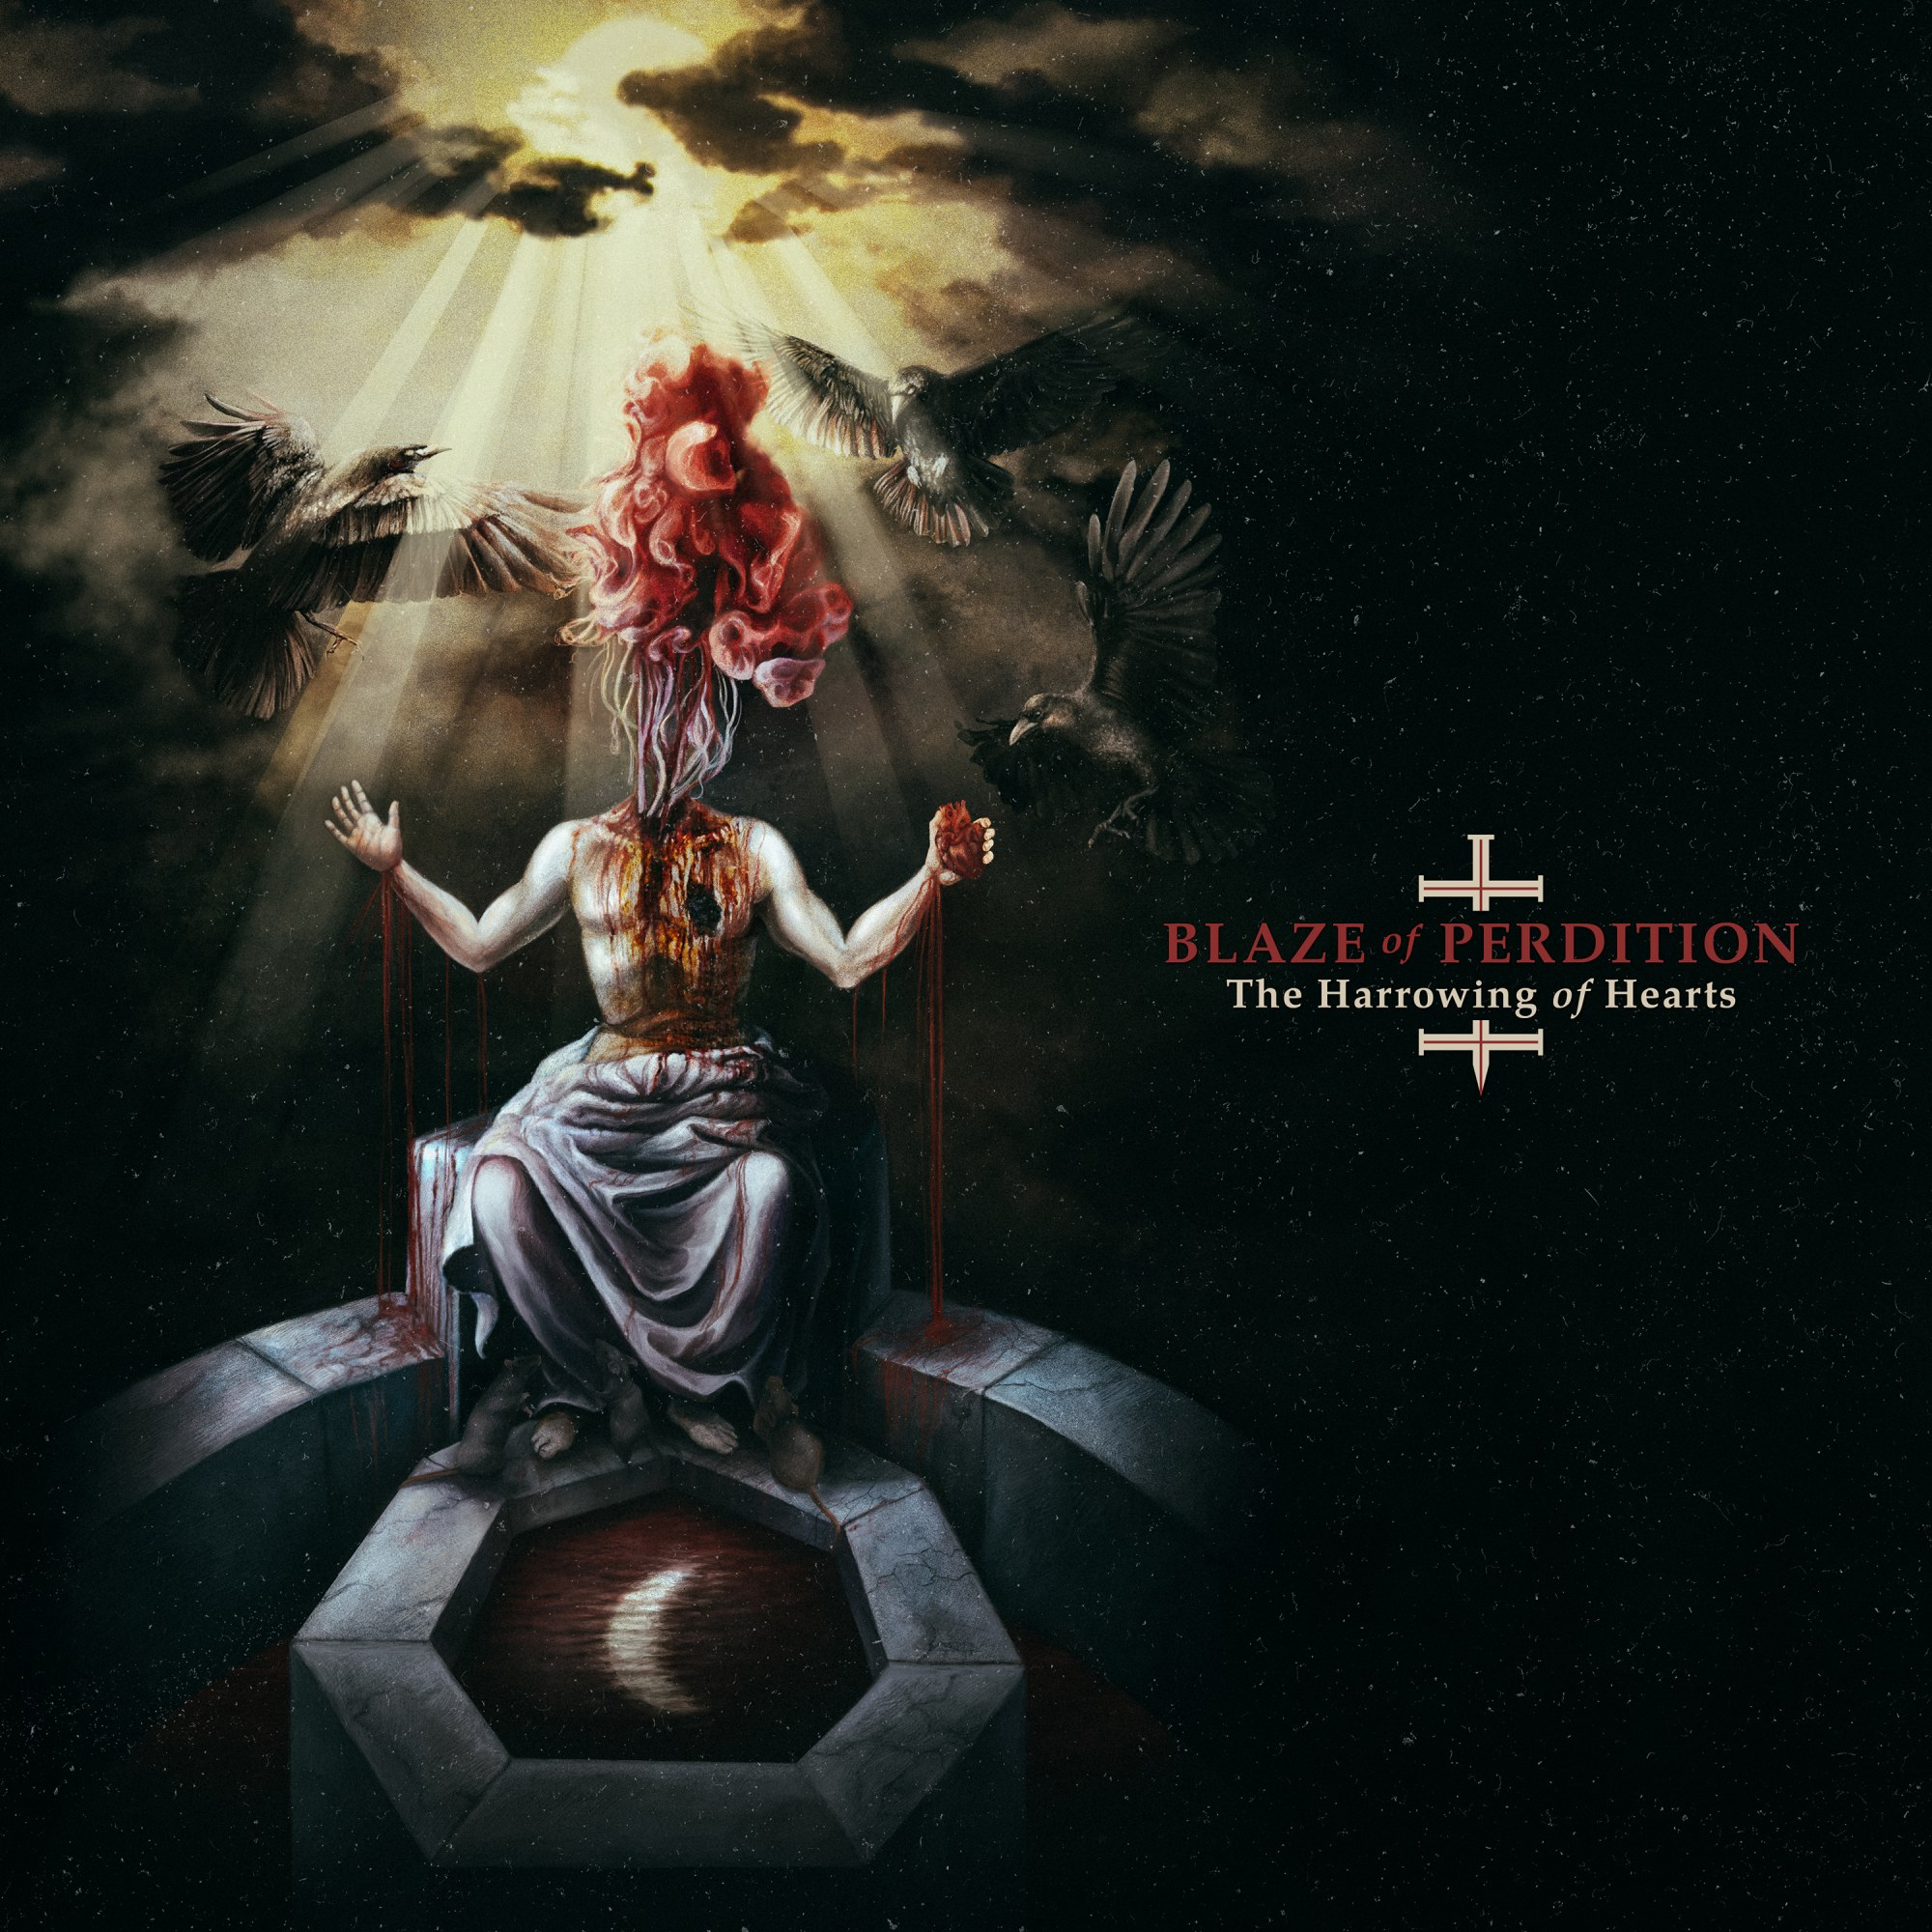 Review for Blaze of Perdition - The Harrowing of Hearts